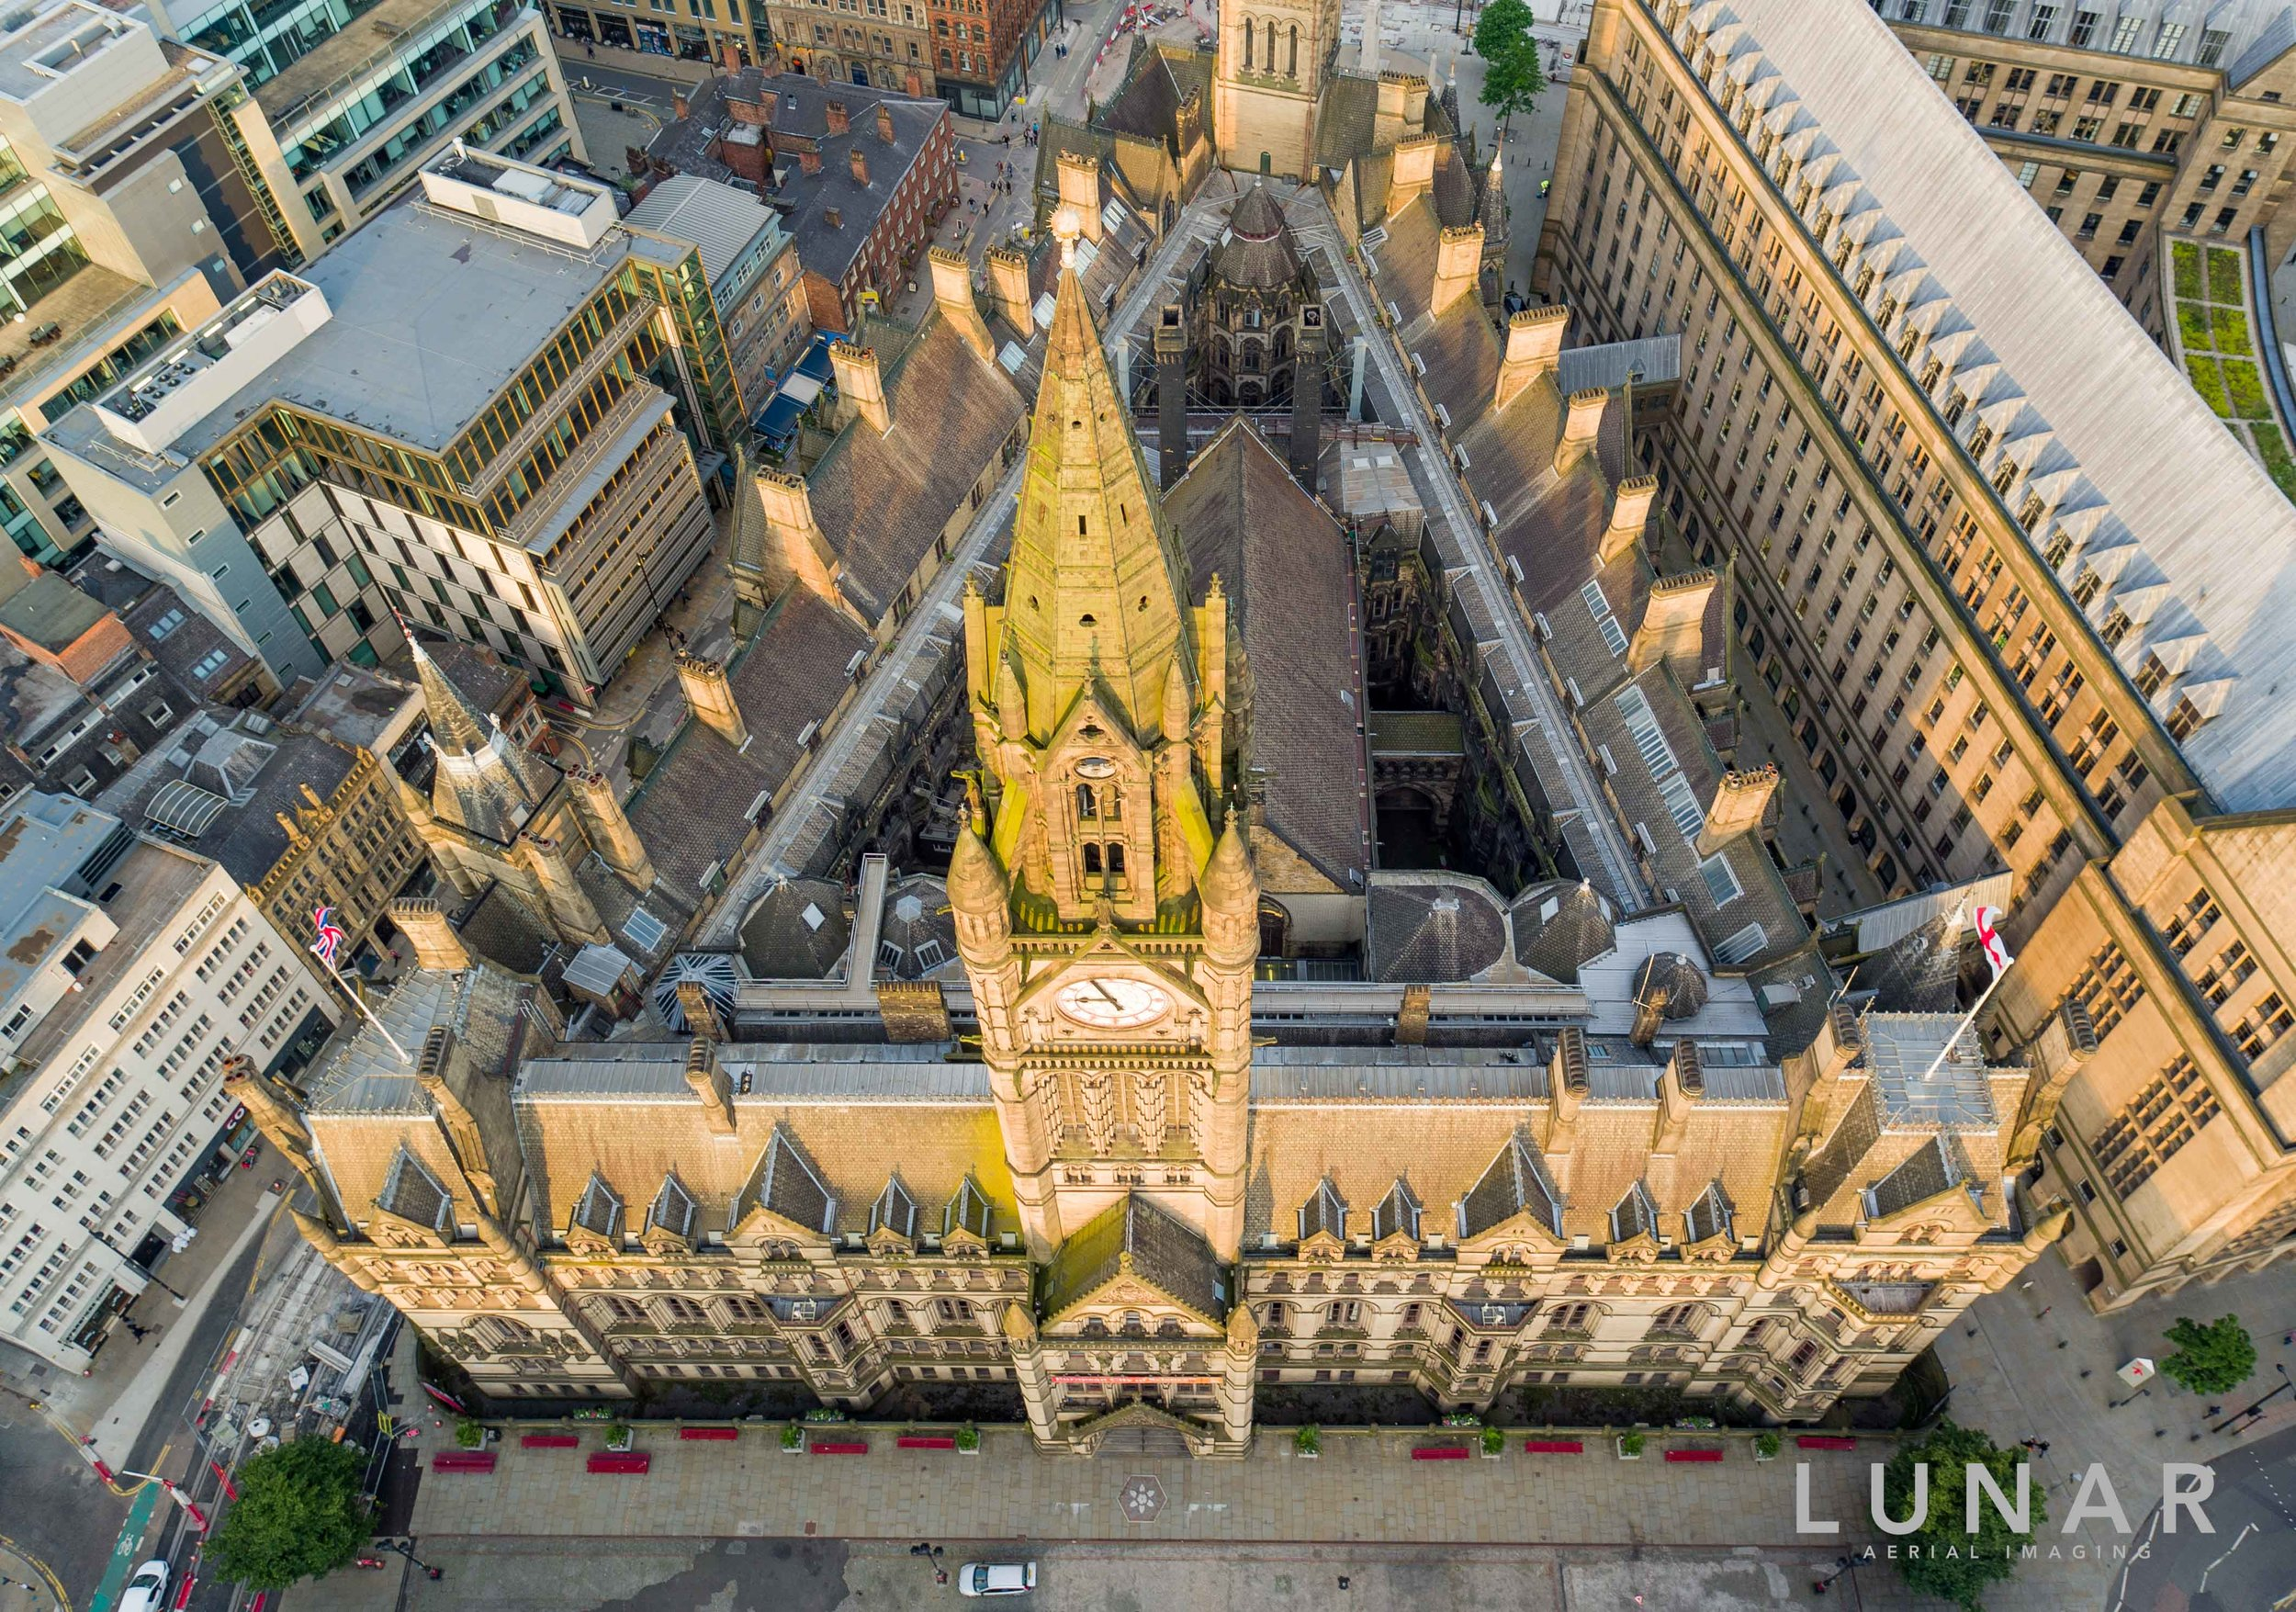 Looking down on to Manchester Town Hall